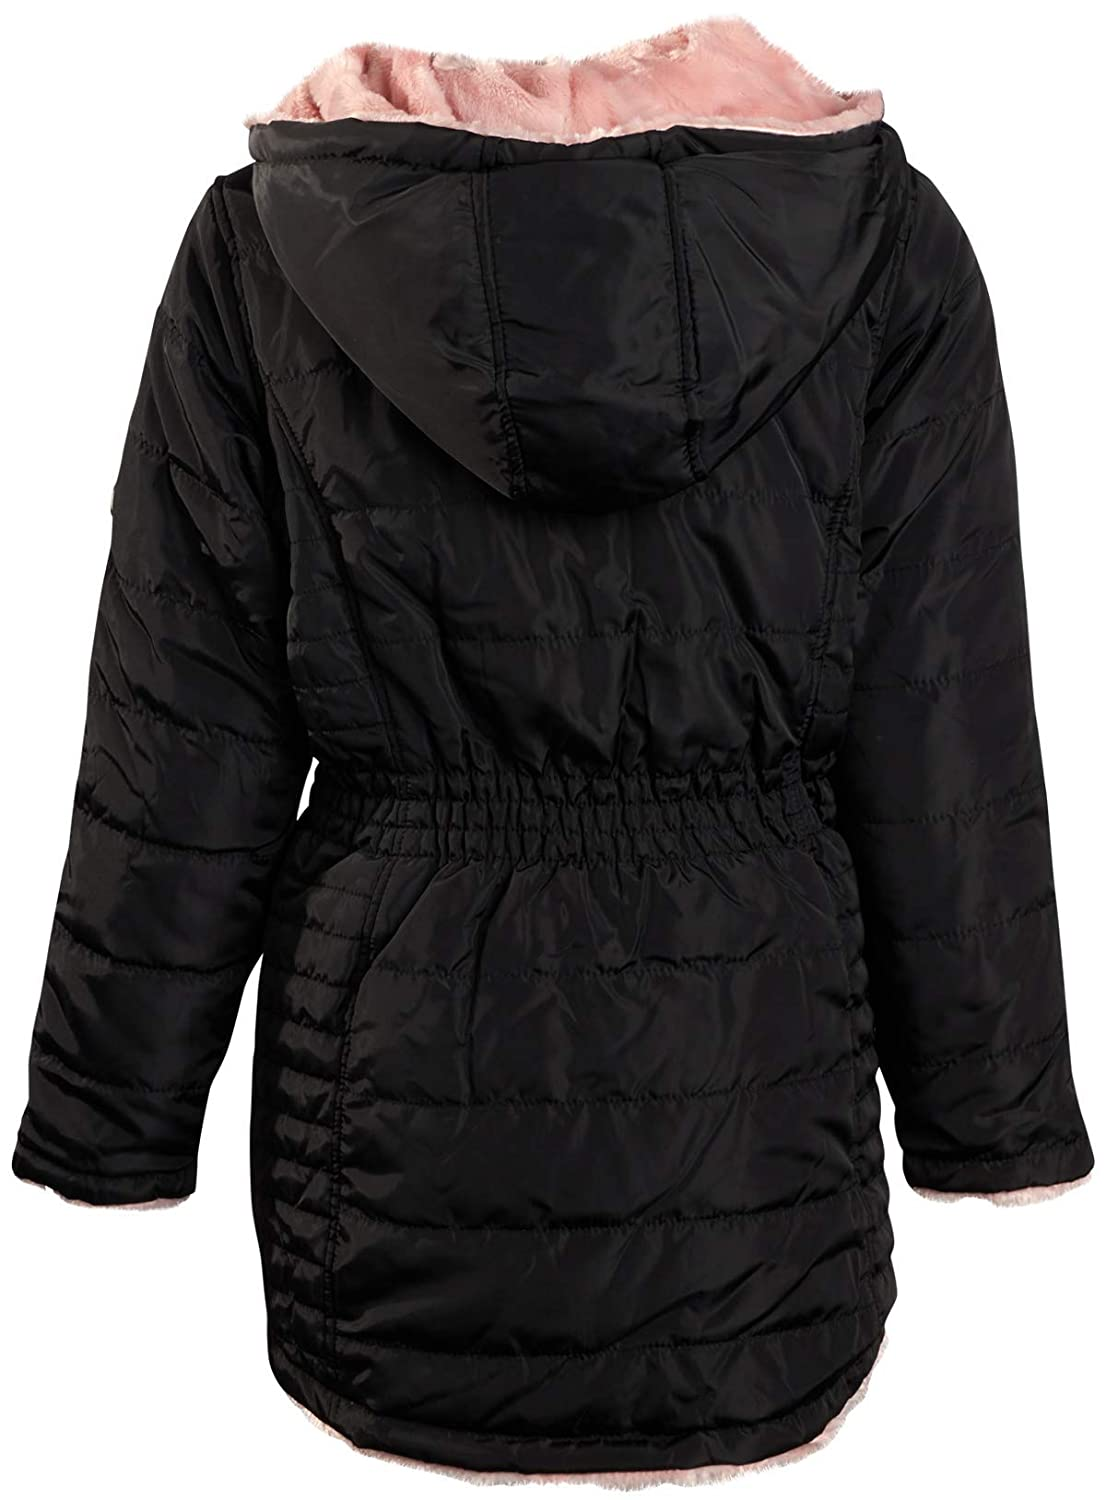 DKNY Girls Hooded Reversible Jacket Nylon Puffer or Sherpa Lined Coat